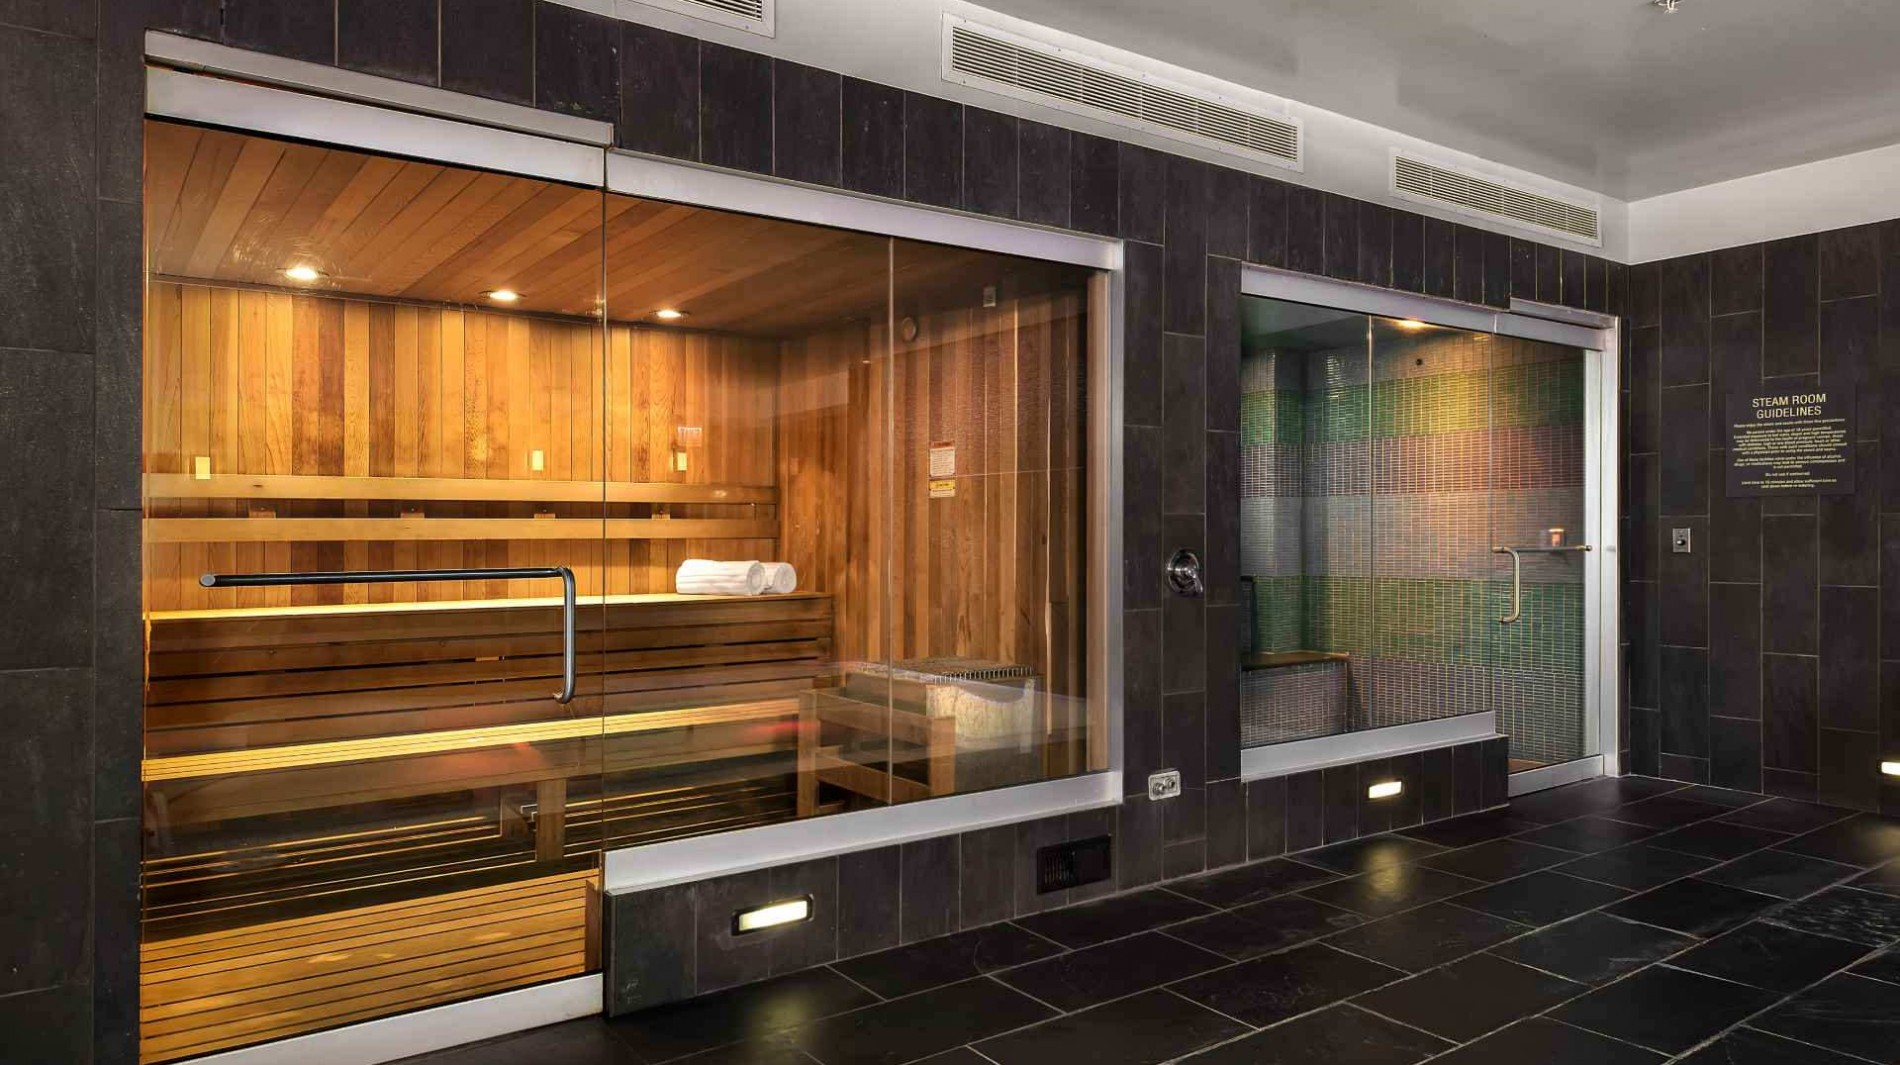 Unwind in our on-site steam room before a dip in the pool.